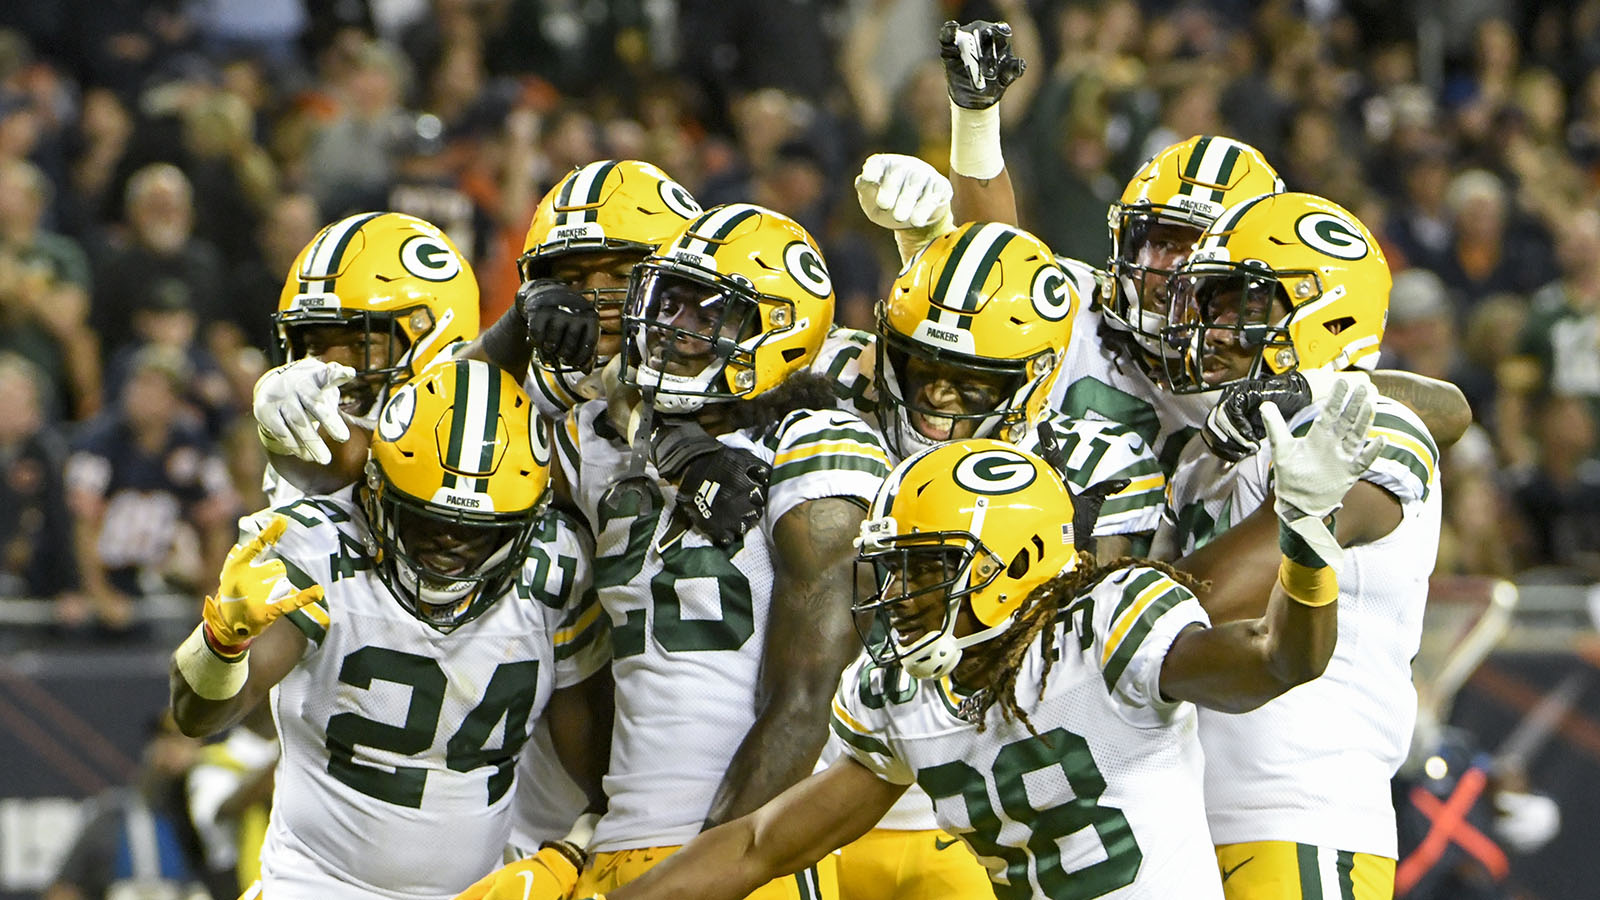 Green Bay Packers players pose for a picture after an NFL football game against the Chicago Bears Thursday, Sept. 5, 2019, in Chicago. The Packers won 10-3. (AP Photo/David Banks)